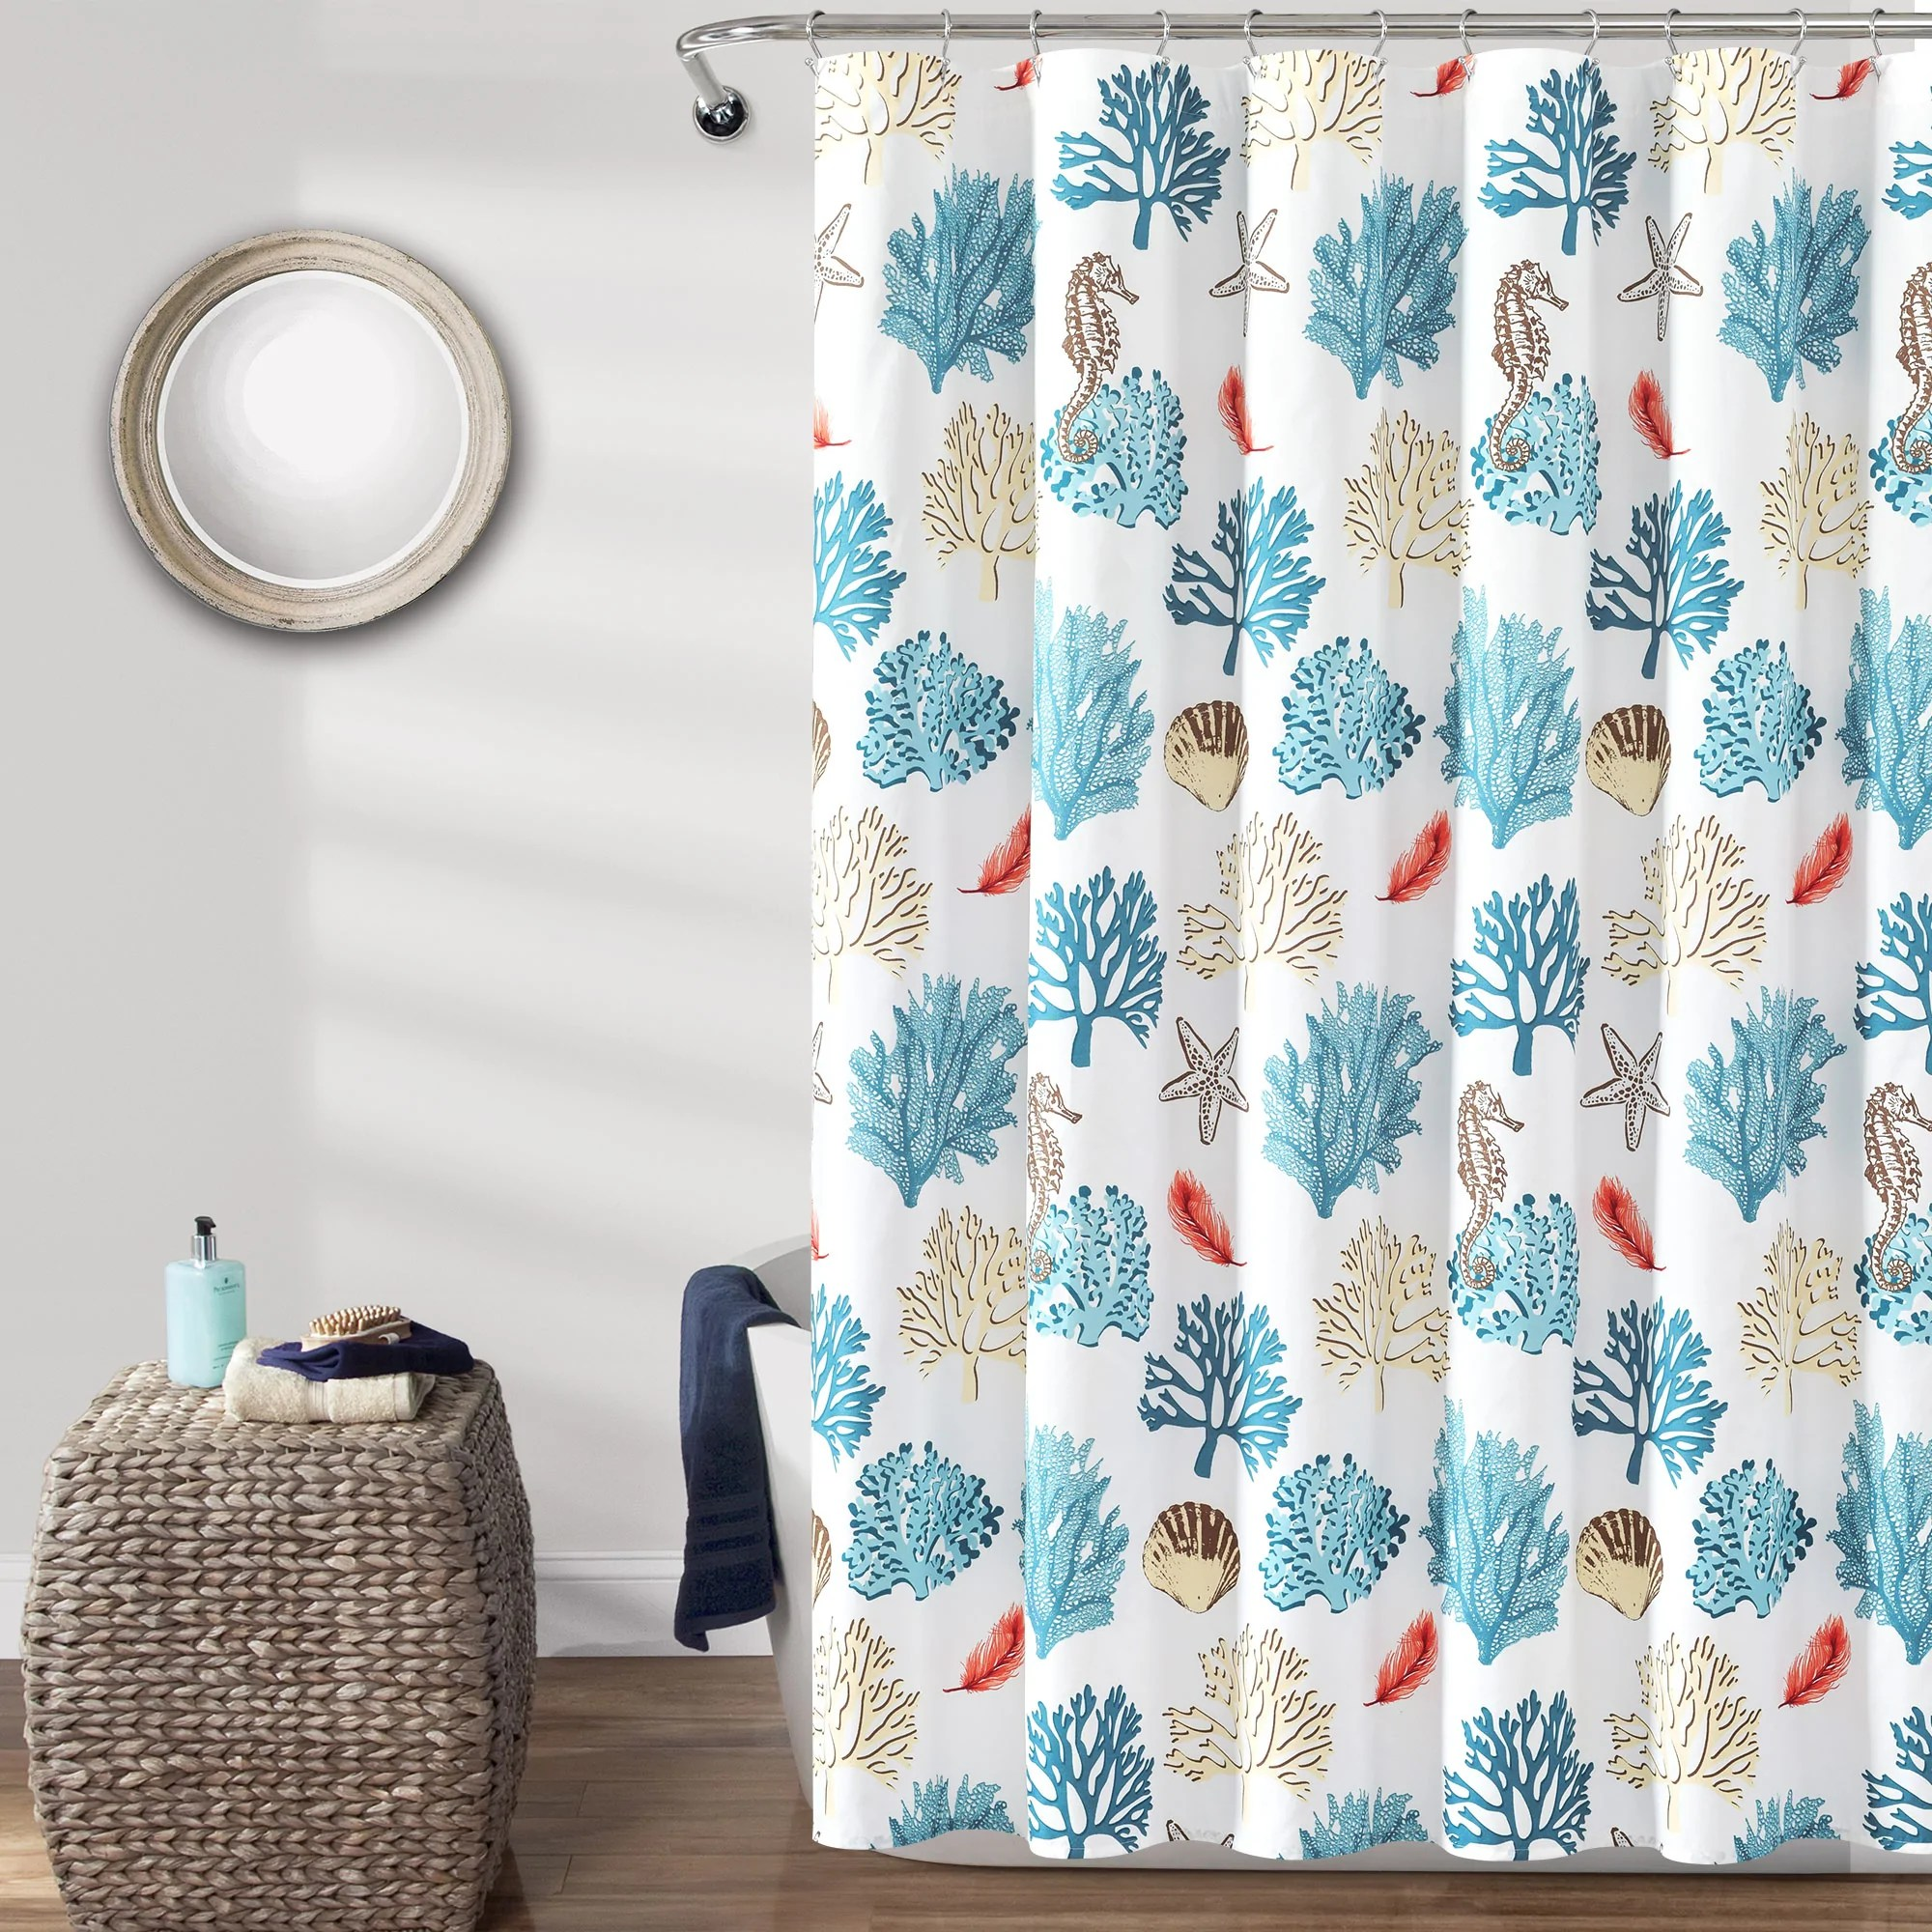 coastal reef feather shower curtain 72 x 72 blue coral